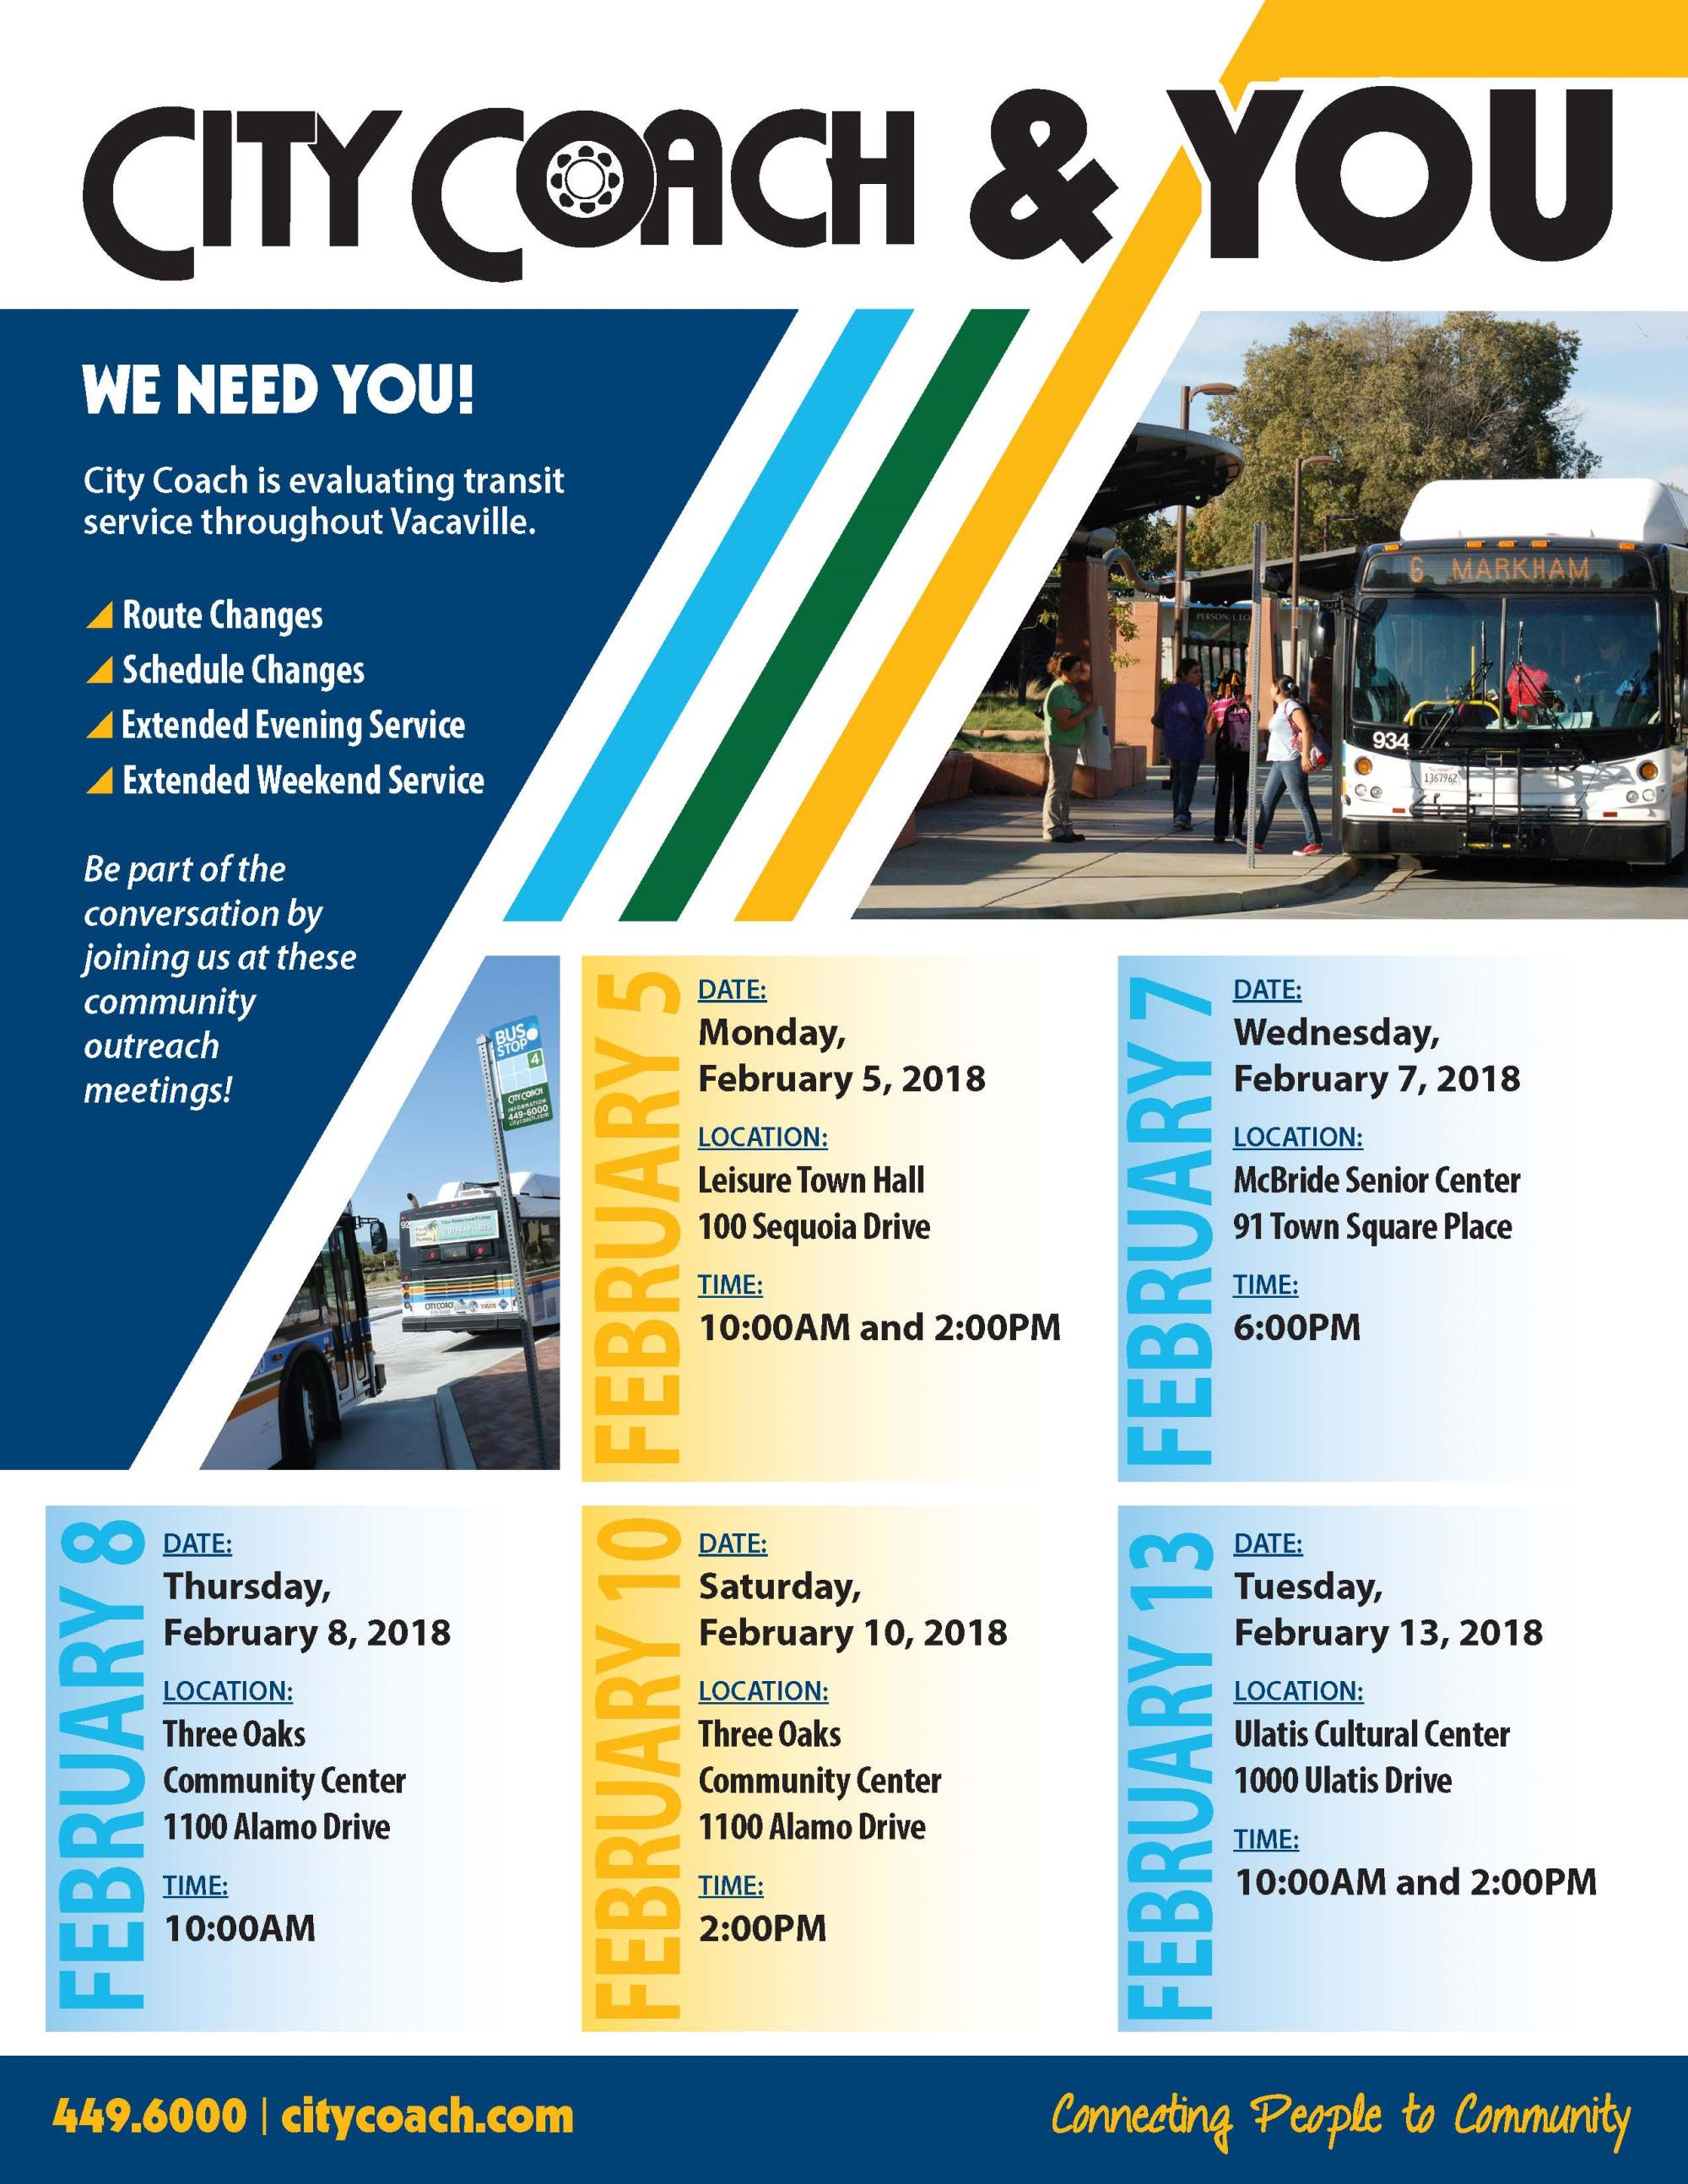 Public notice flyer for meetings being held by City Coach regarding updates, news and feedback from riders.